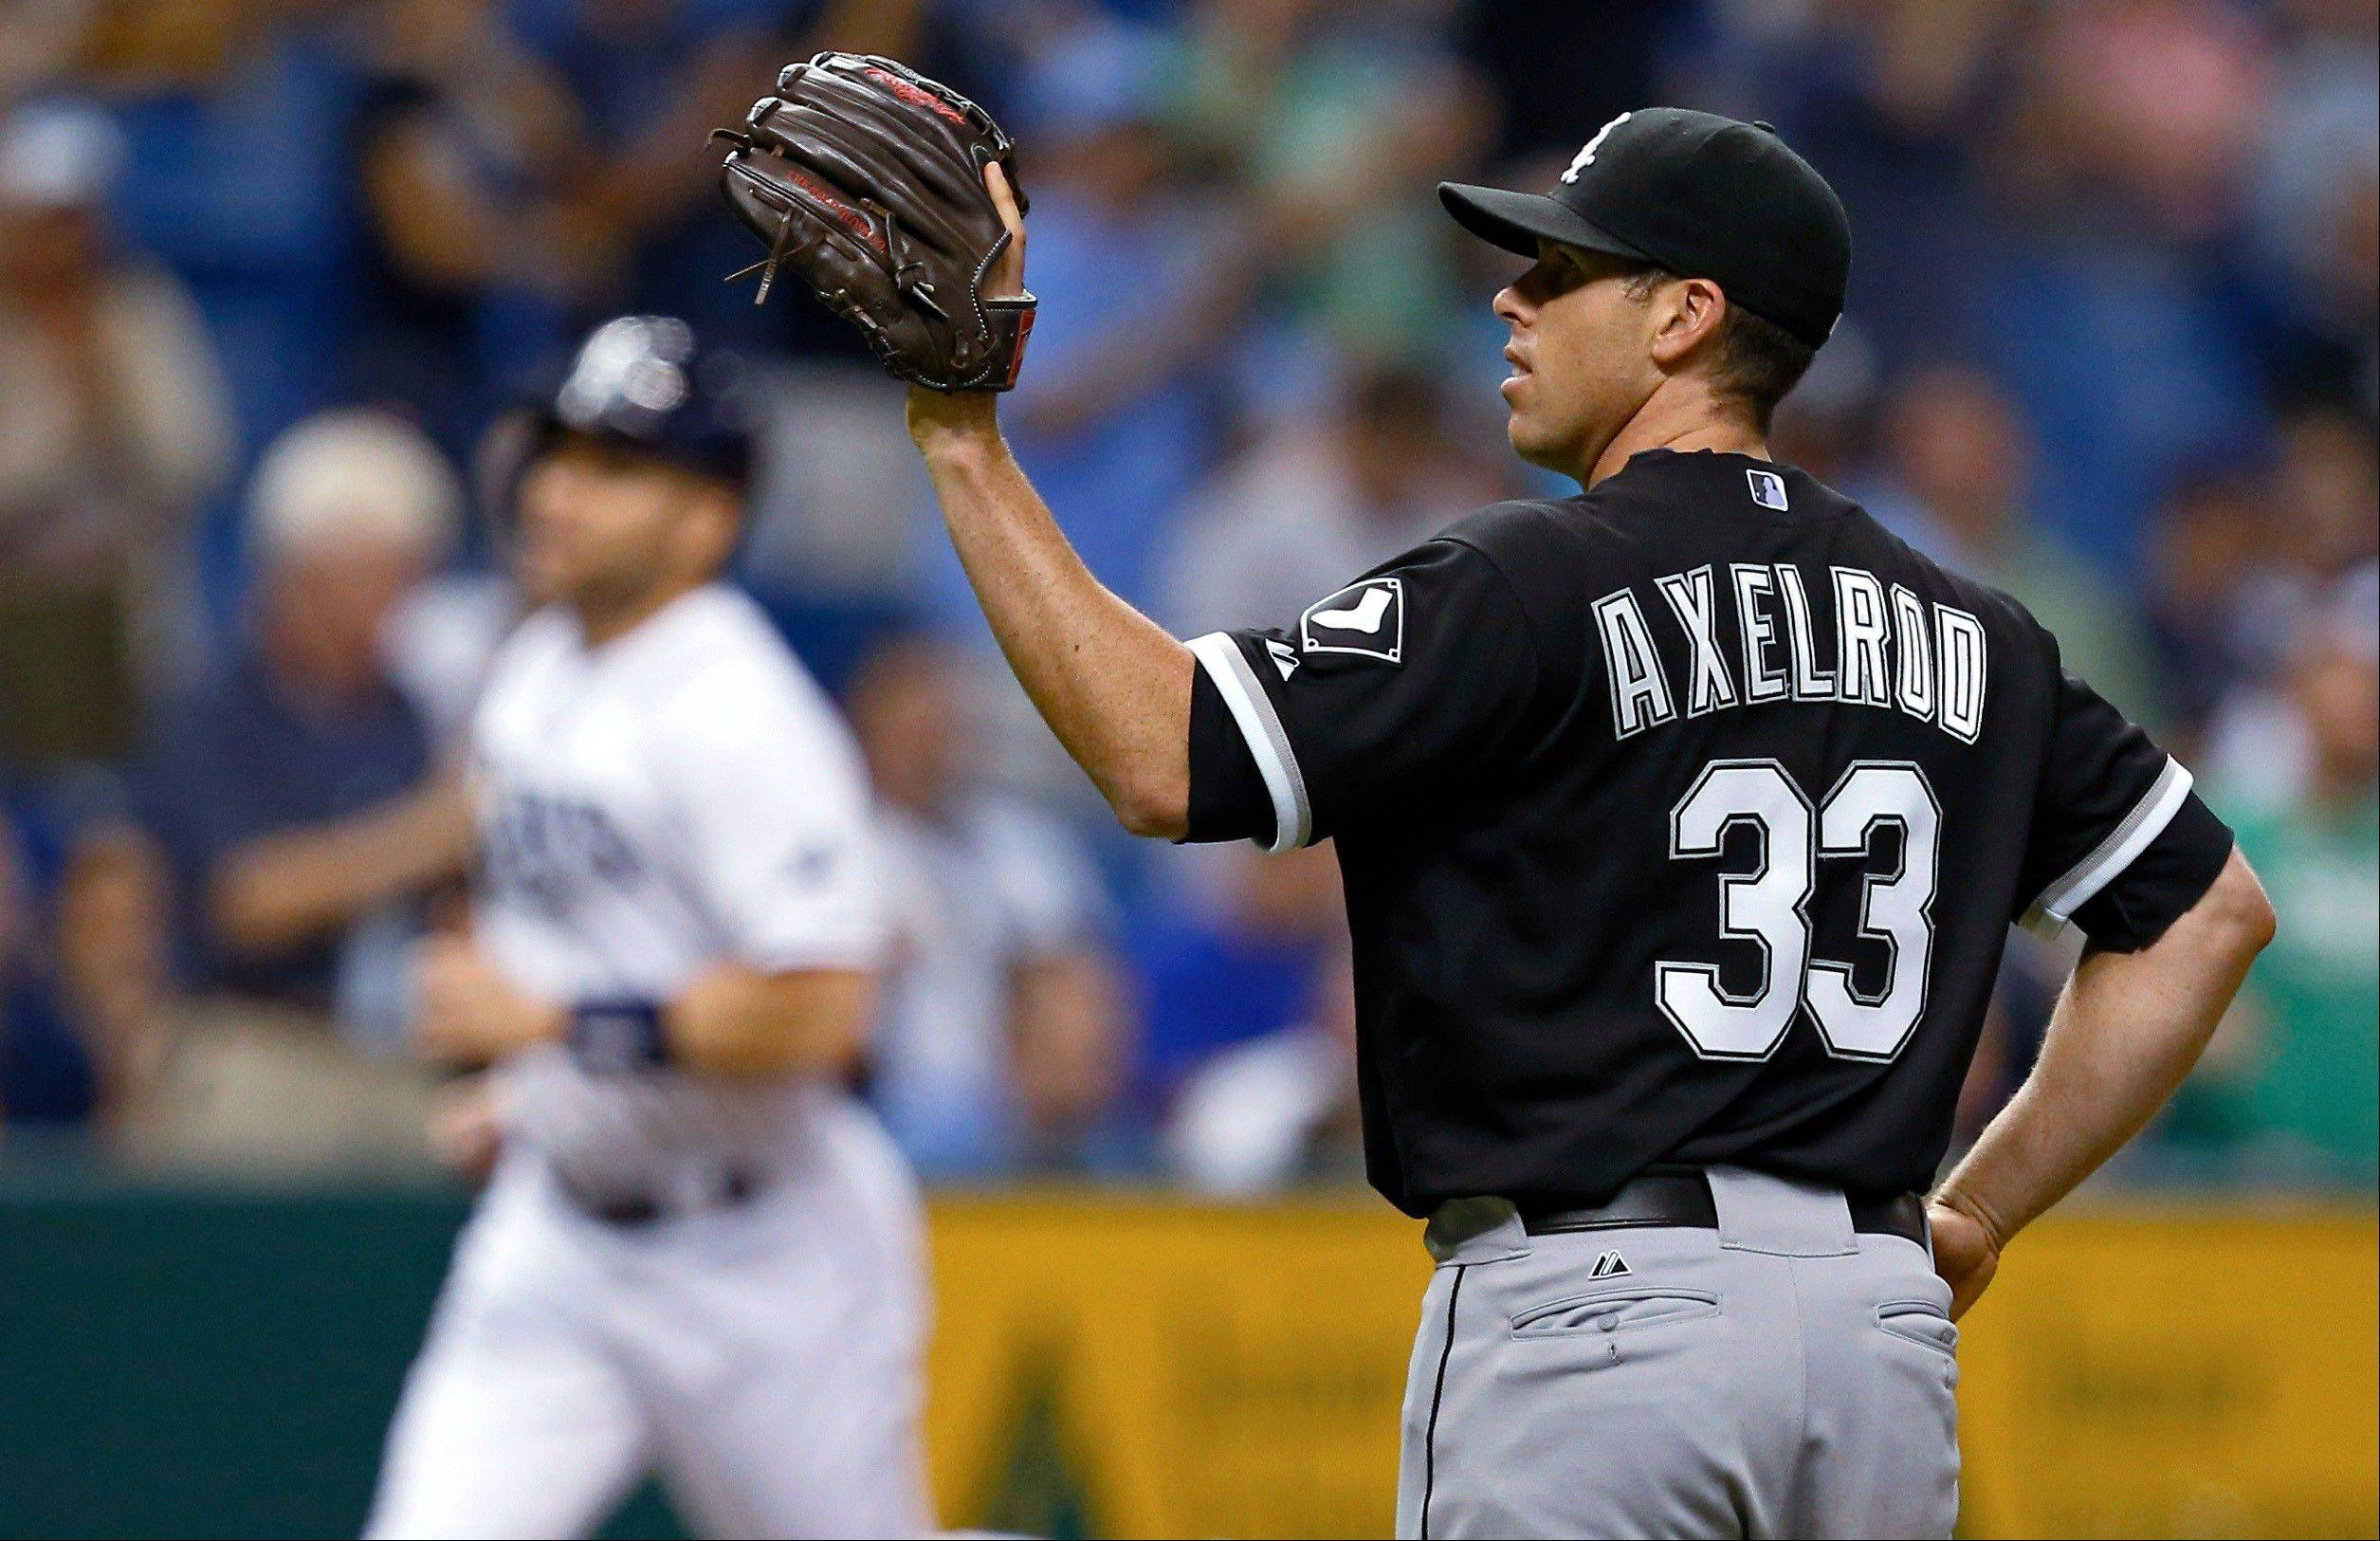 White Sox starting pitcher Dylan Axelrod waits for a new ball after giving up a two-run home run to the Rays' Jose Molina during the second inning Friday in St. Petersburg, Fla.